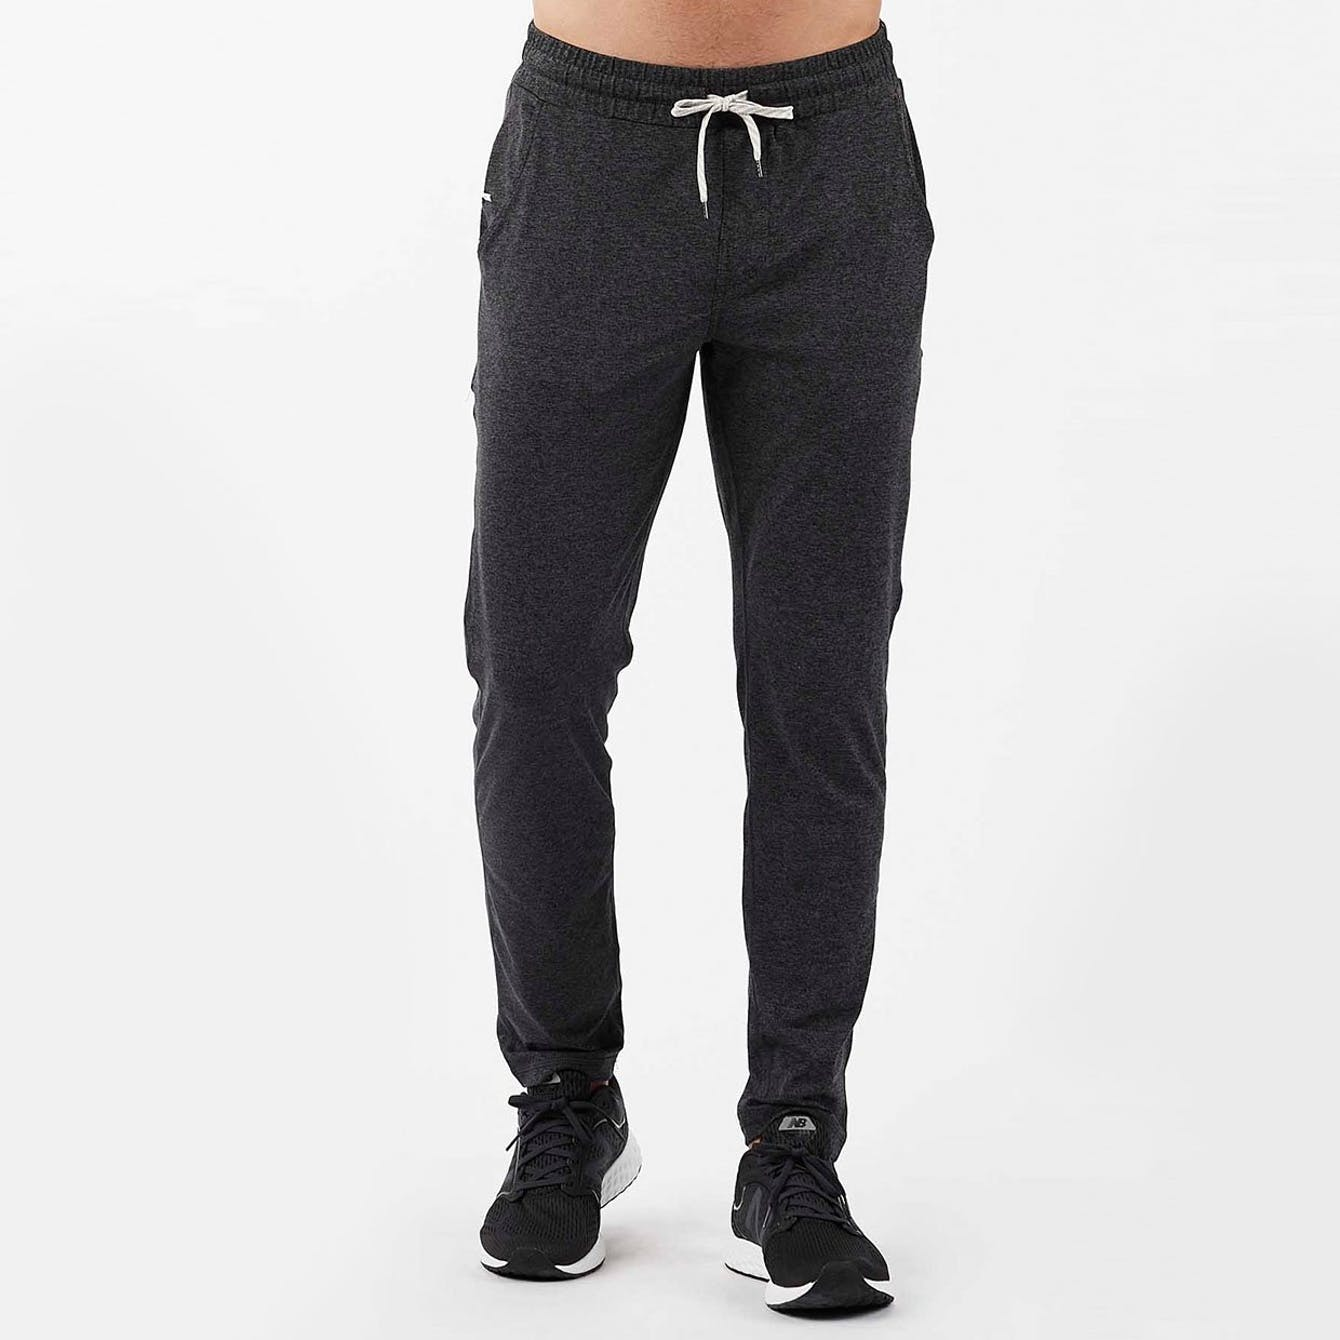 Men's Sweatpants & Joggers